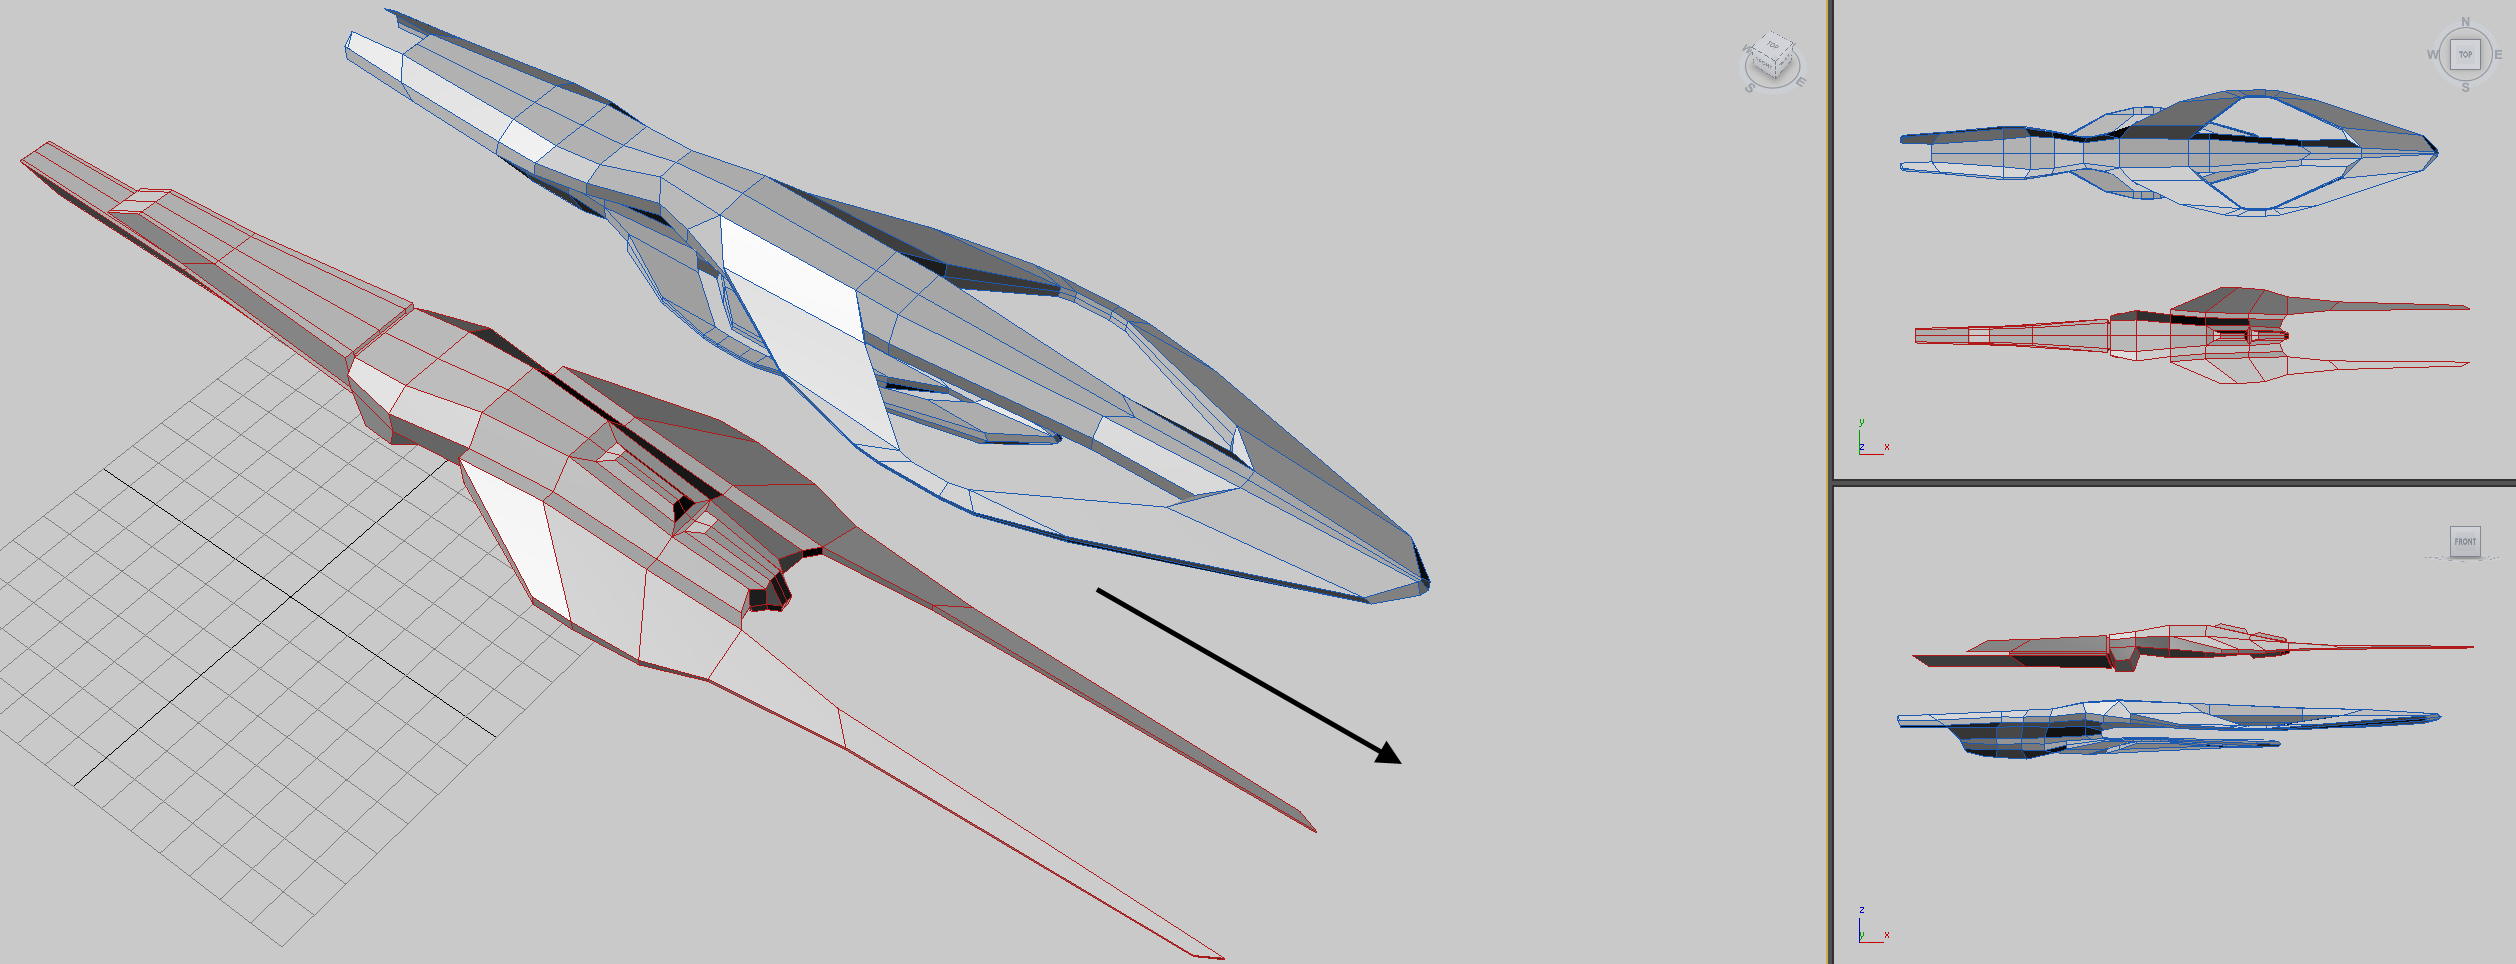 cruiser-concepts.png